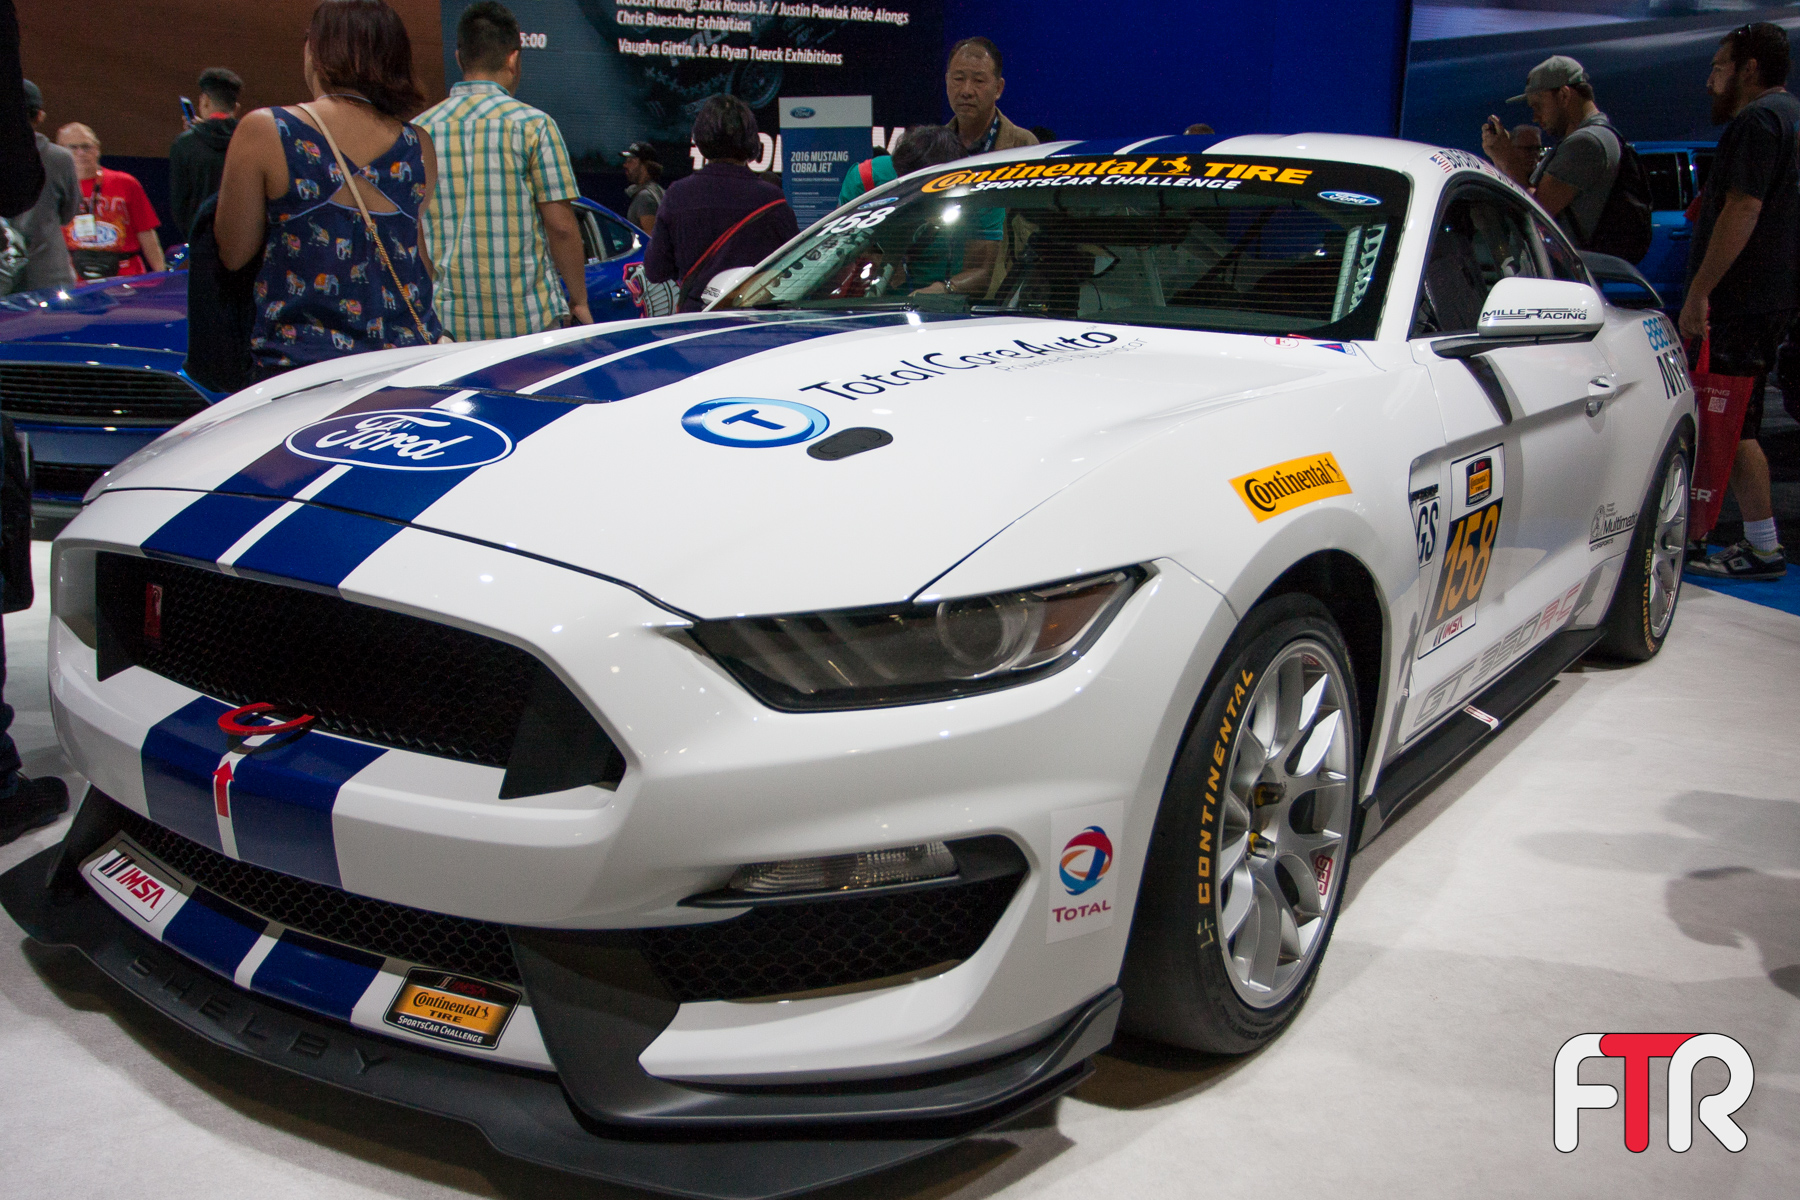 Sema 2015 Coverage – Ford Booth | Fully Torqued Racing Blog